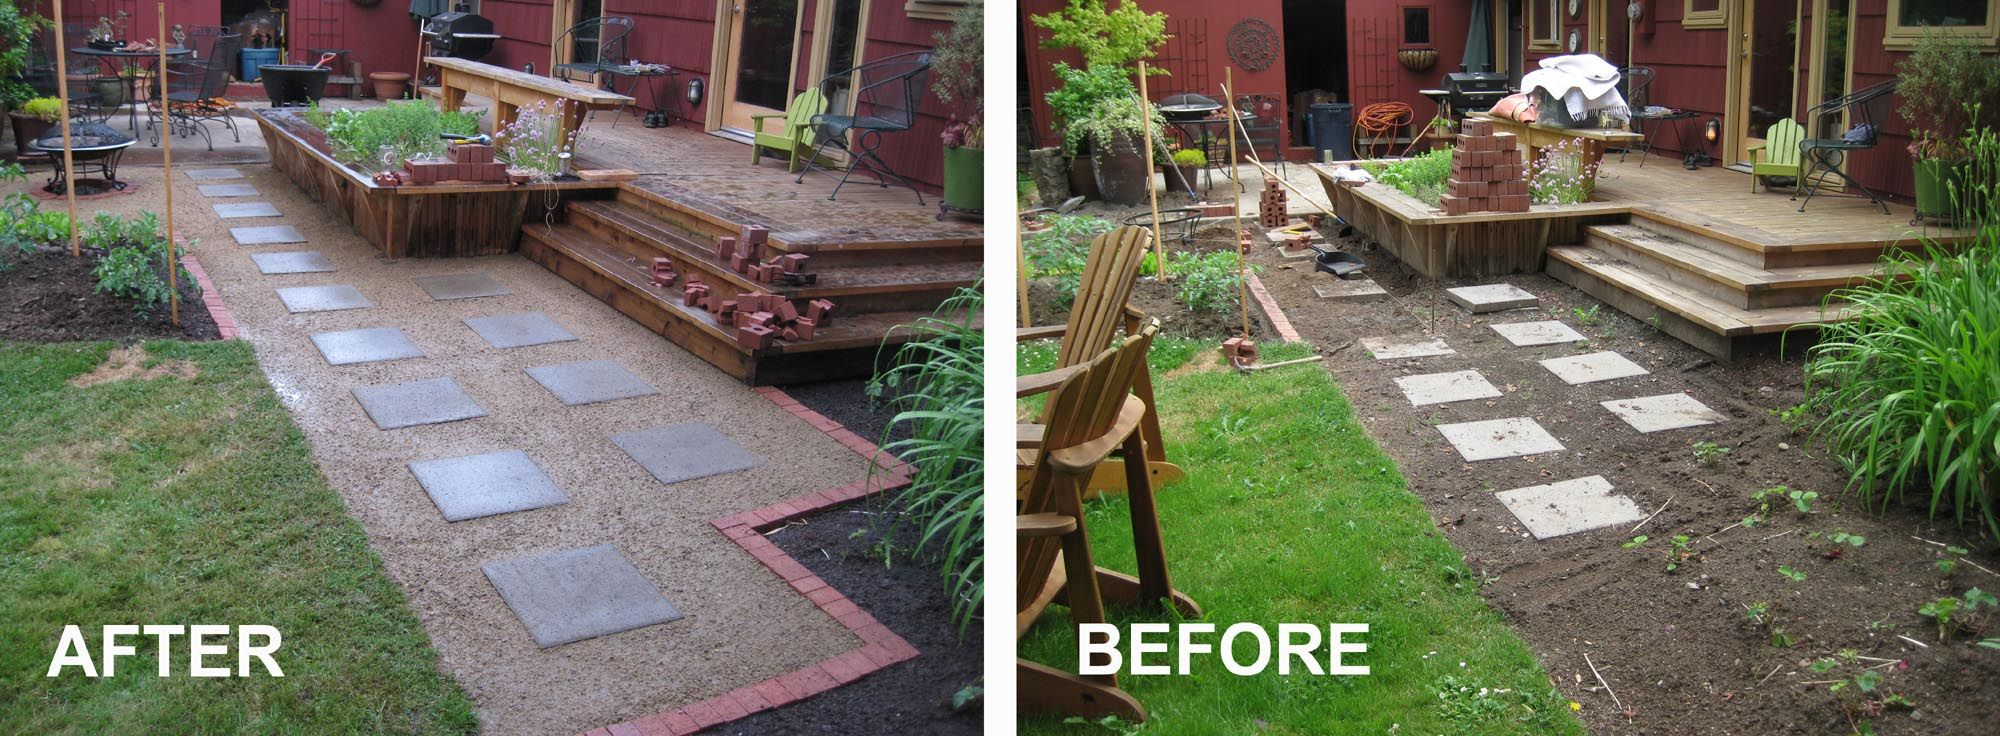 Images About Custom Patio Ideas On Pinterest Patio Fire With Patio Remodel.